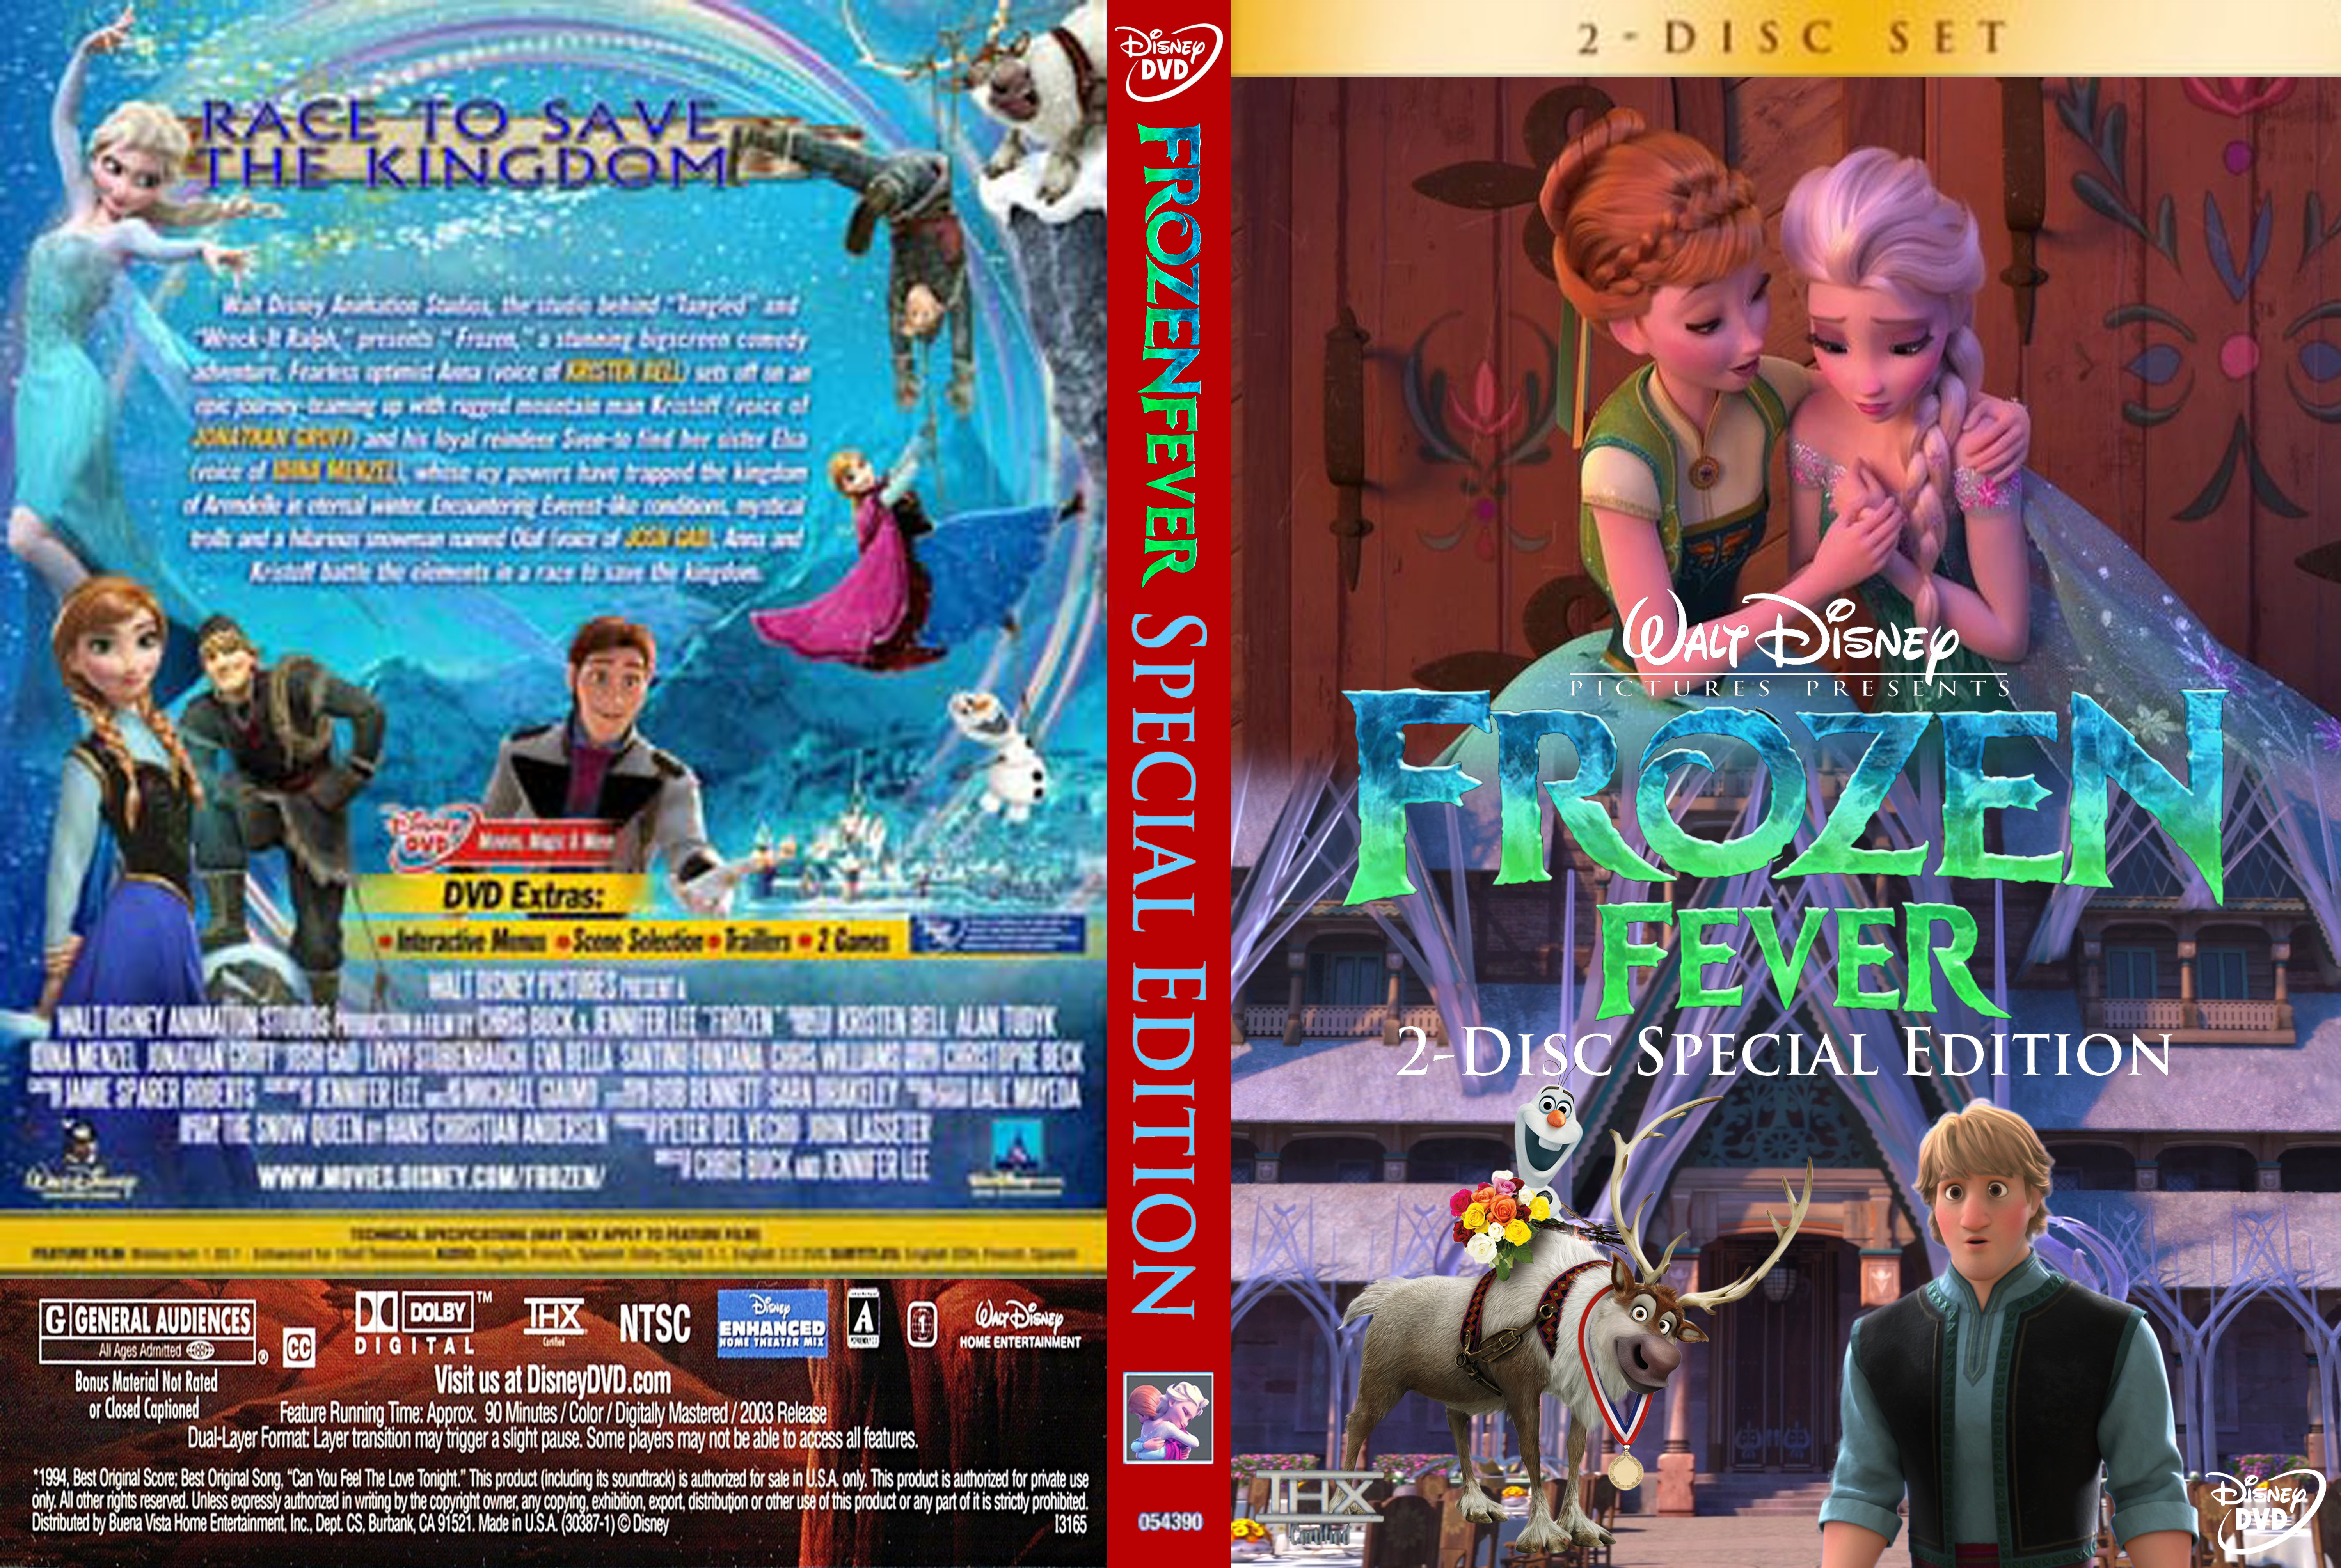 Walt Disney's アナと雪の女王 Fever 2-Disc Special Edition (2004) DVD